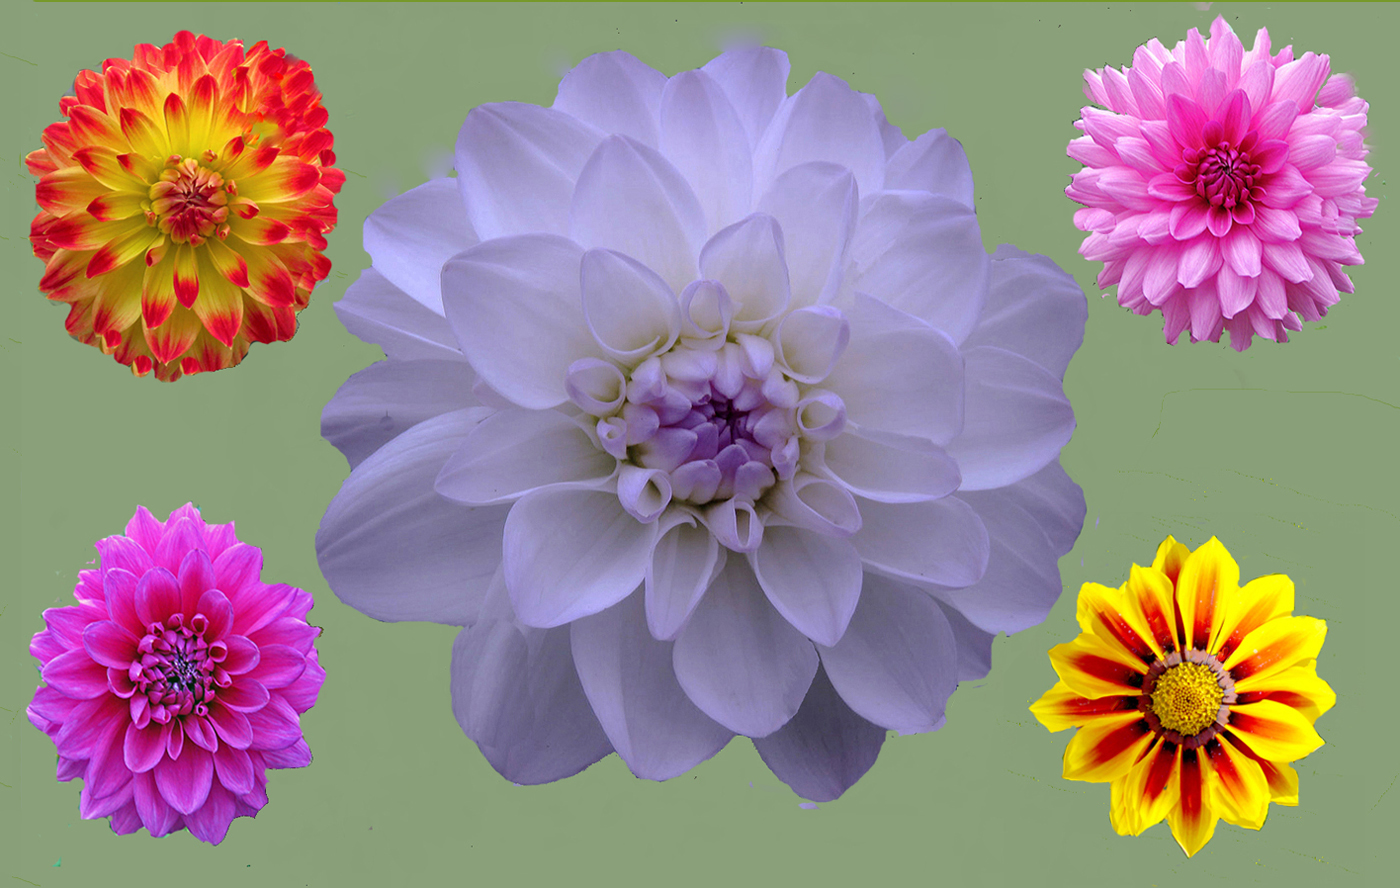 DAHLIAS DISPLAY by Dave Taylor